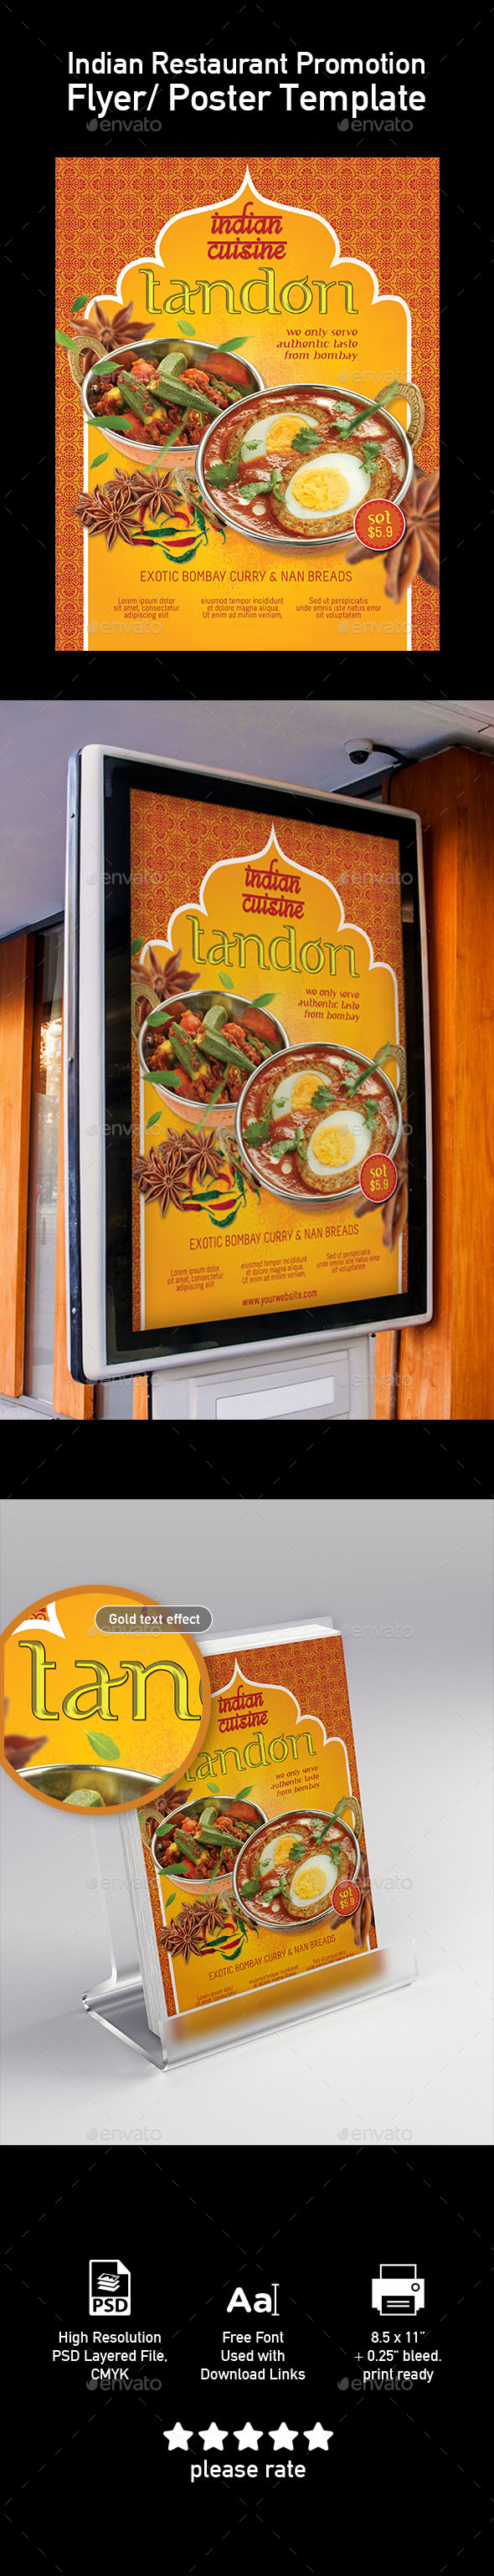 Template of India Food Restaurant Menu - Restaurant Flyers